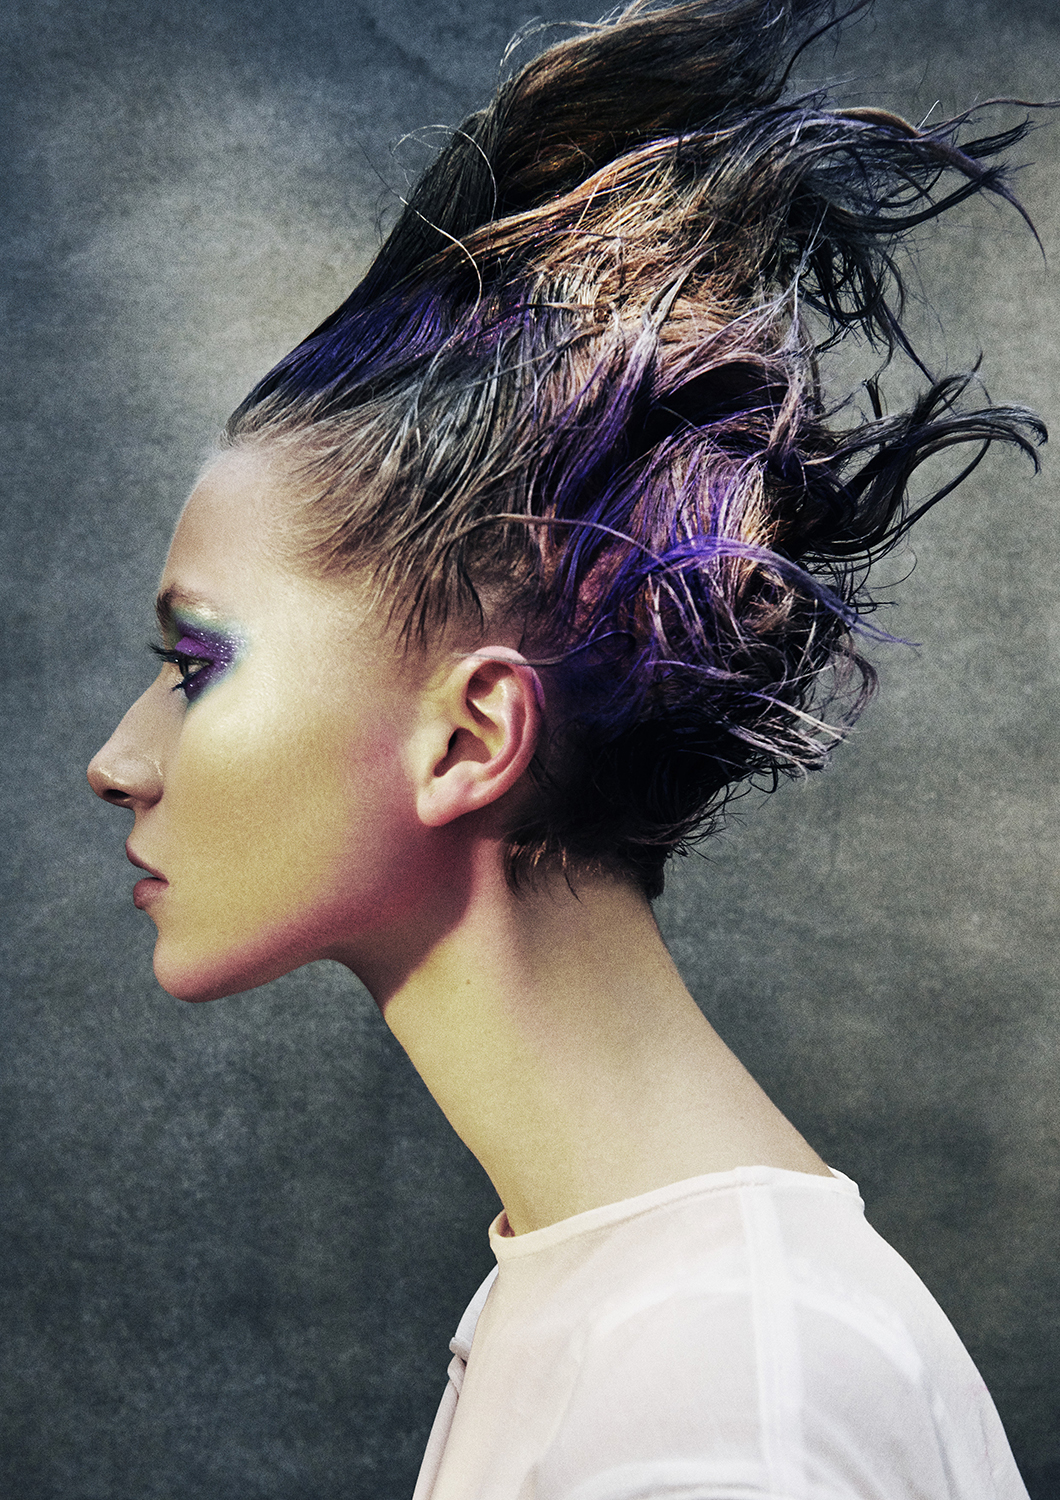 fiore-2.0-collection, editorial-collection, richi-grisillo, mikele-simone, academy-salon